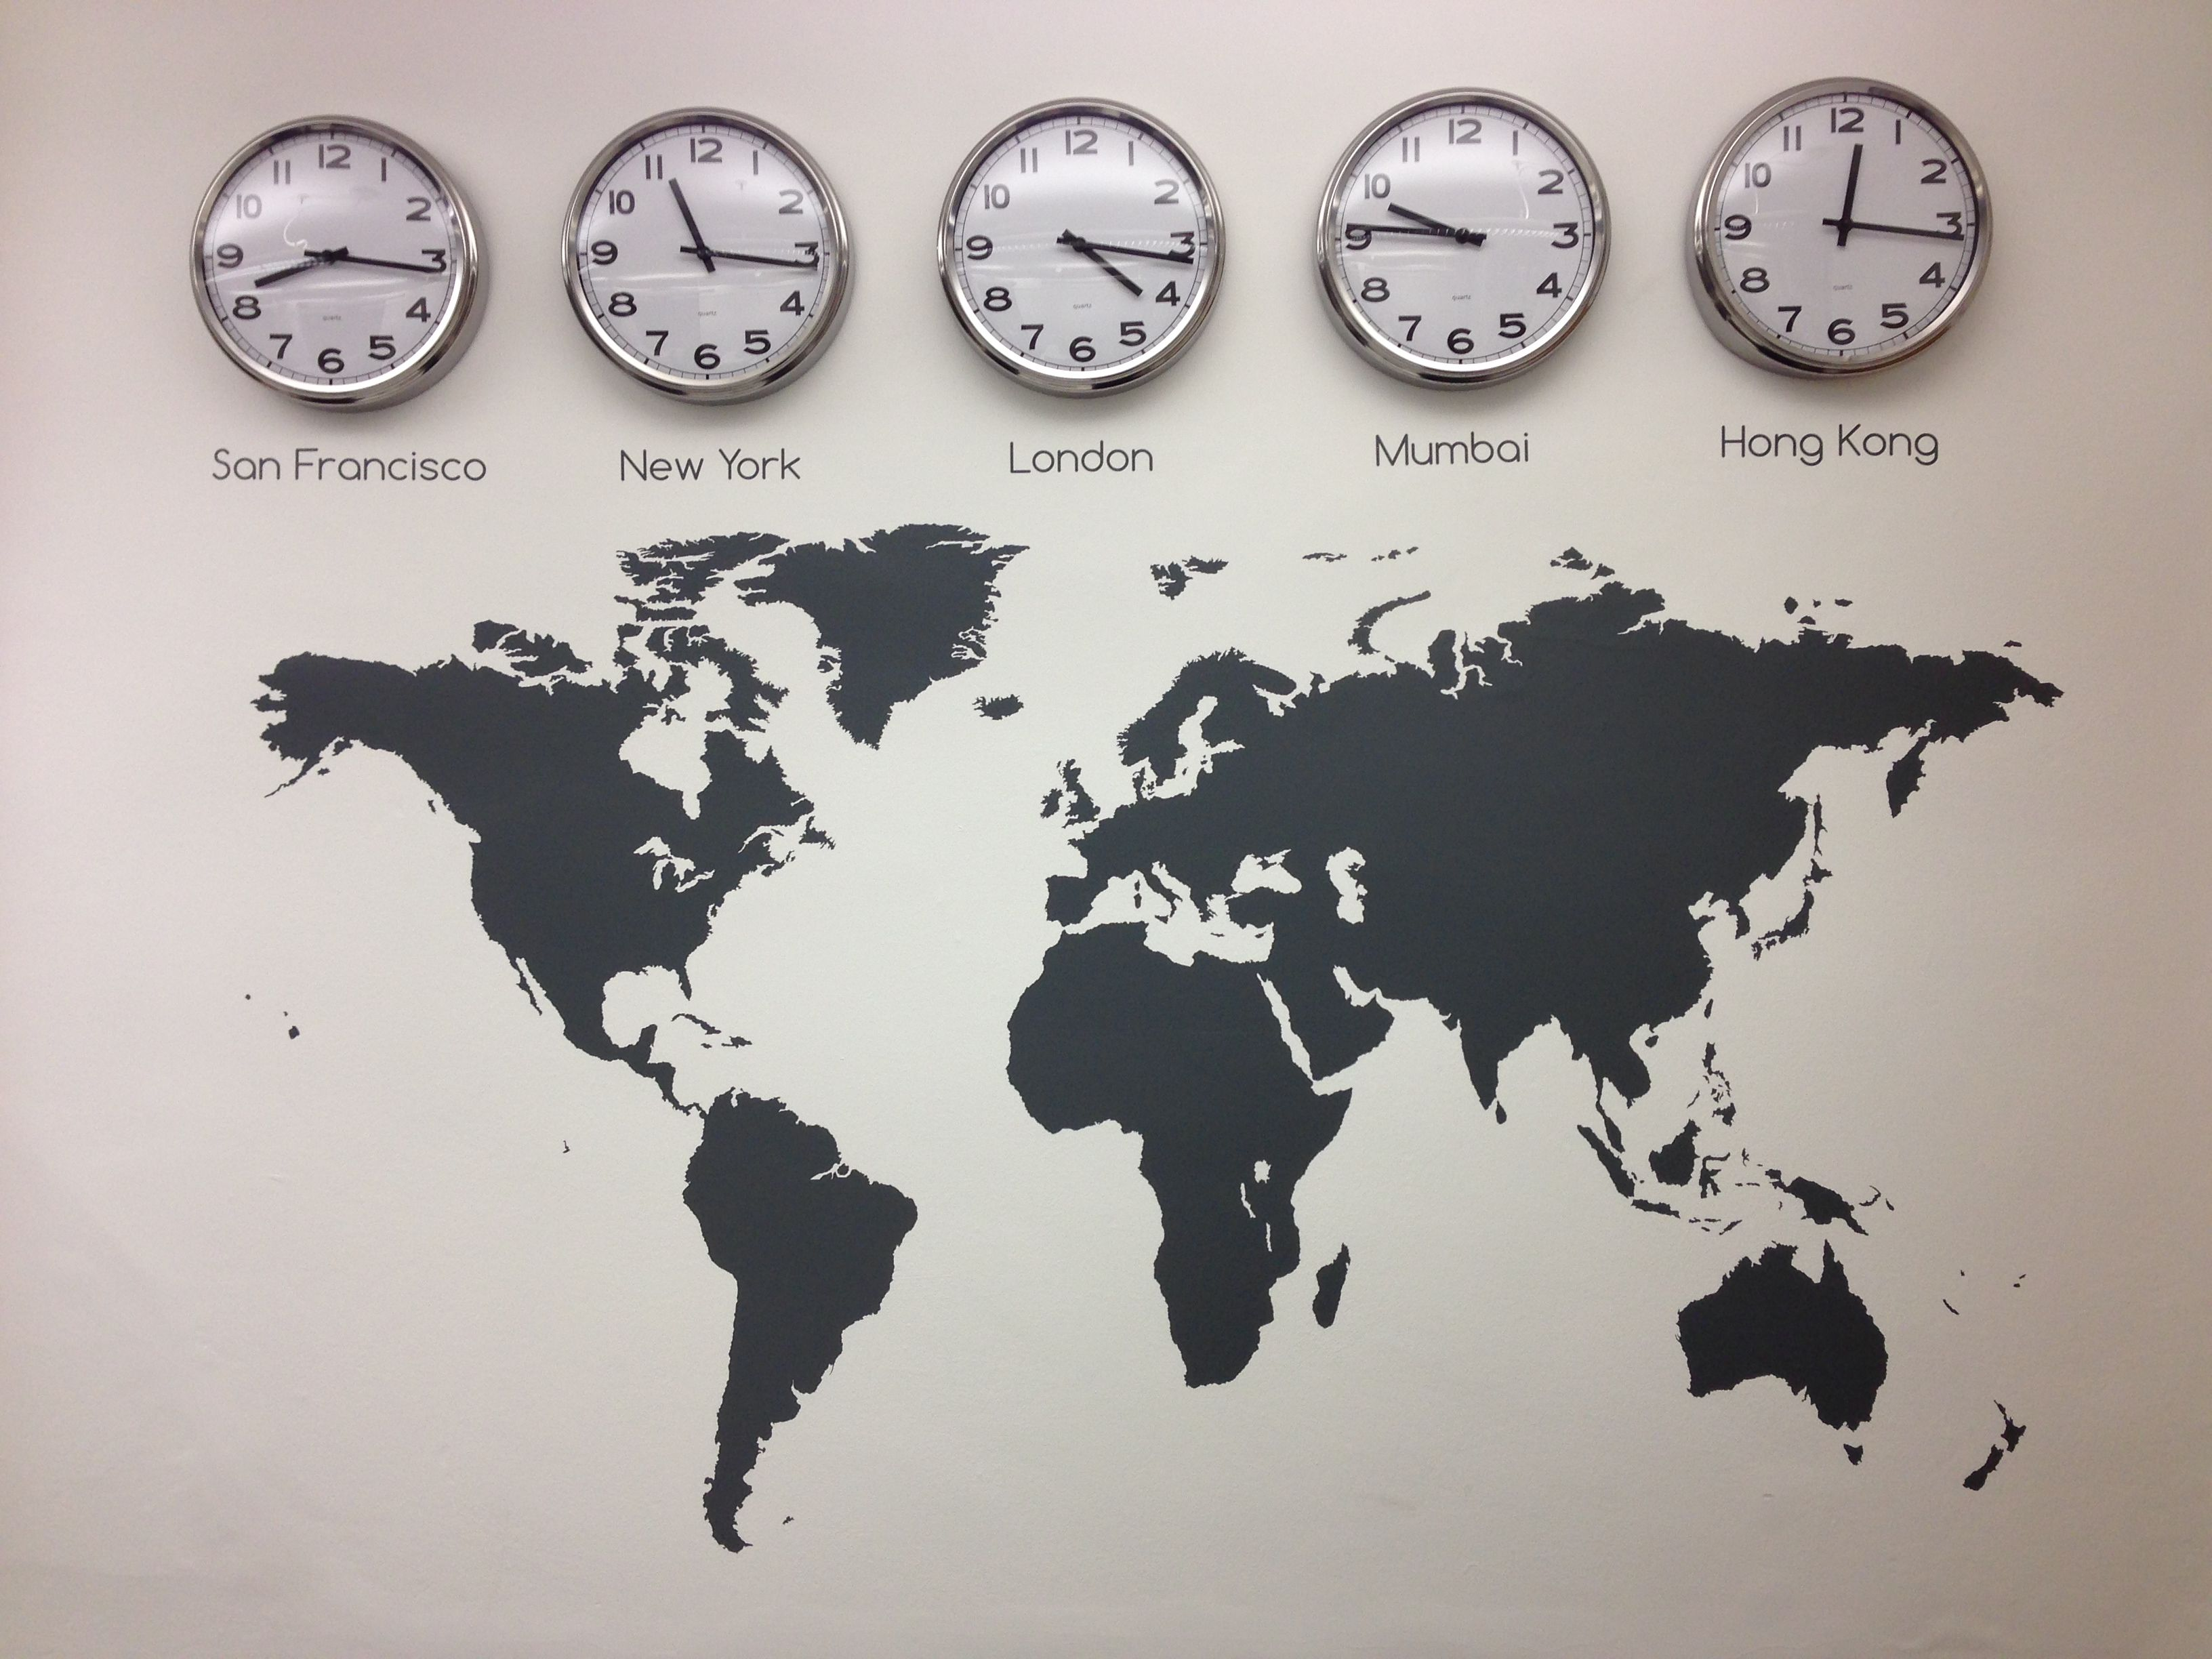 World map vinyl wall sticker time zones clocks and graphics vinylimpression why not mix our map with some clocks to show different time zone that reflect your business decals and graphics gumiabroncs Gallery